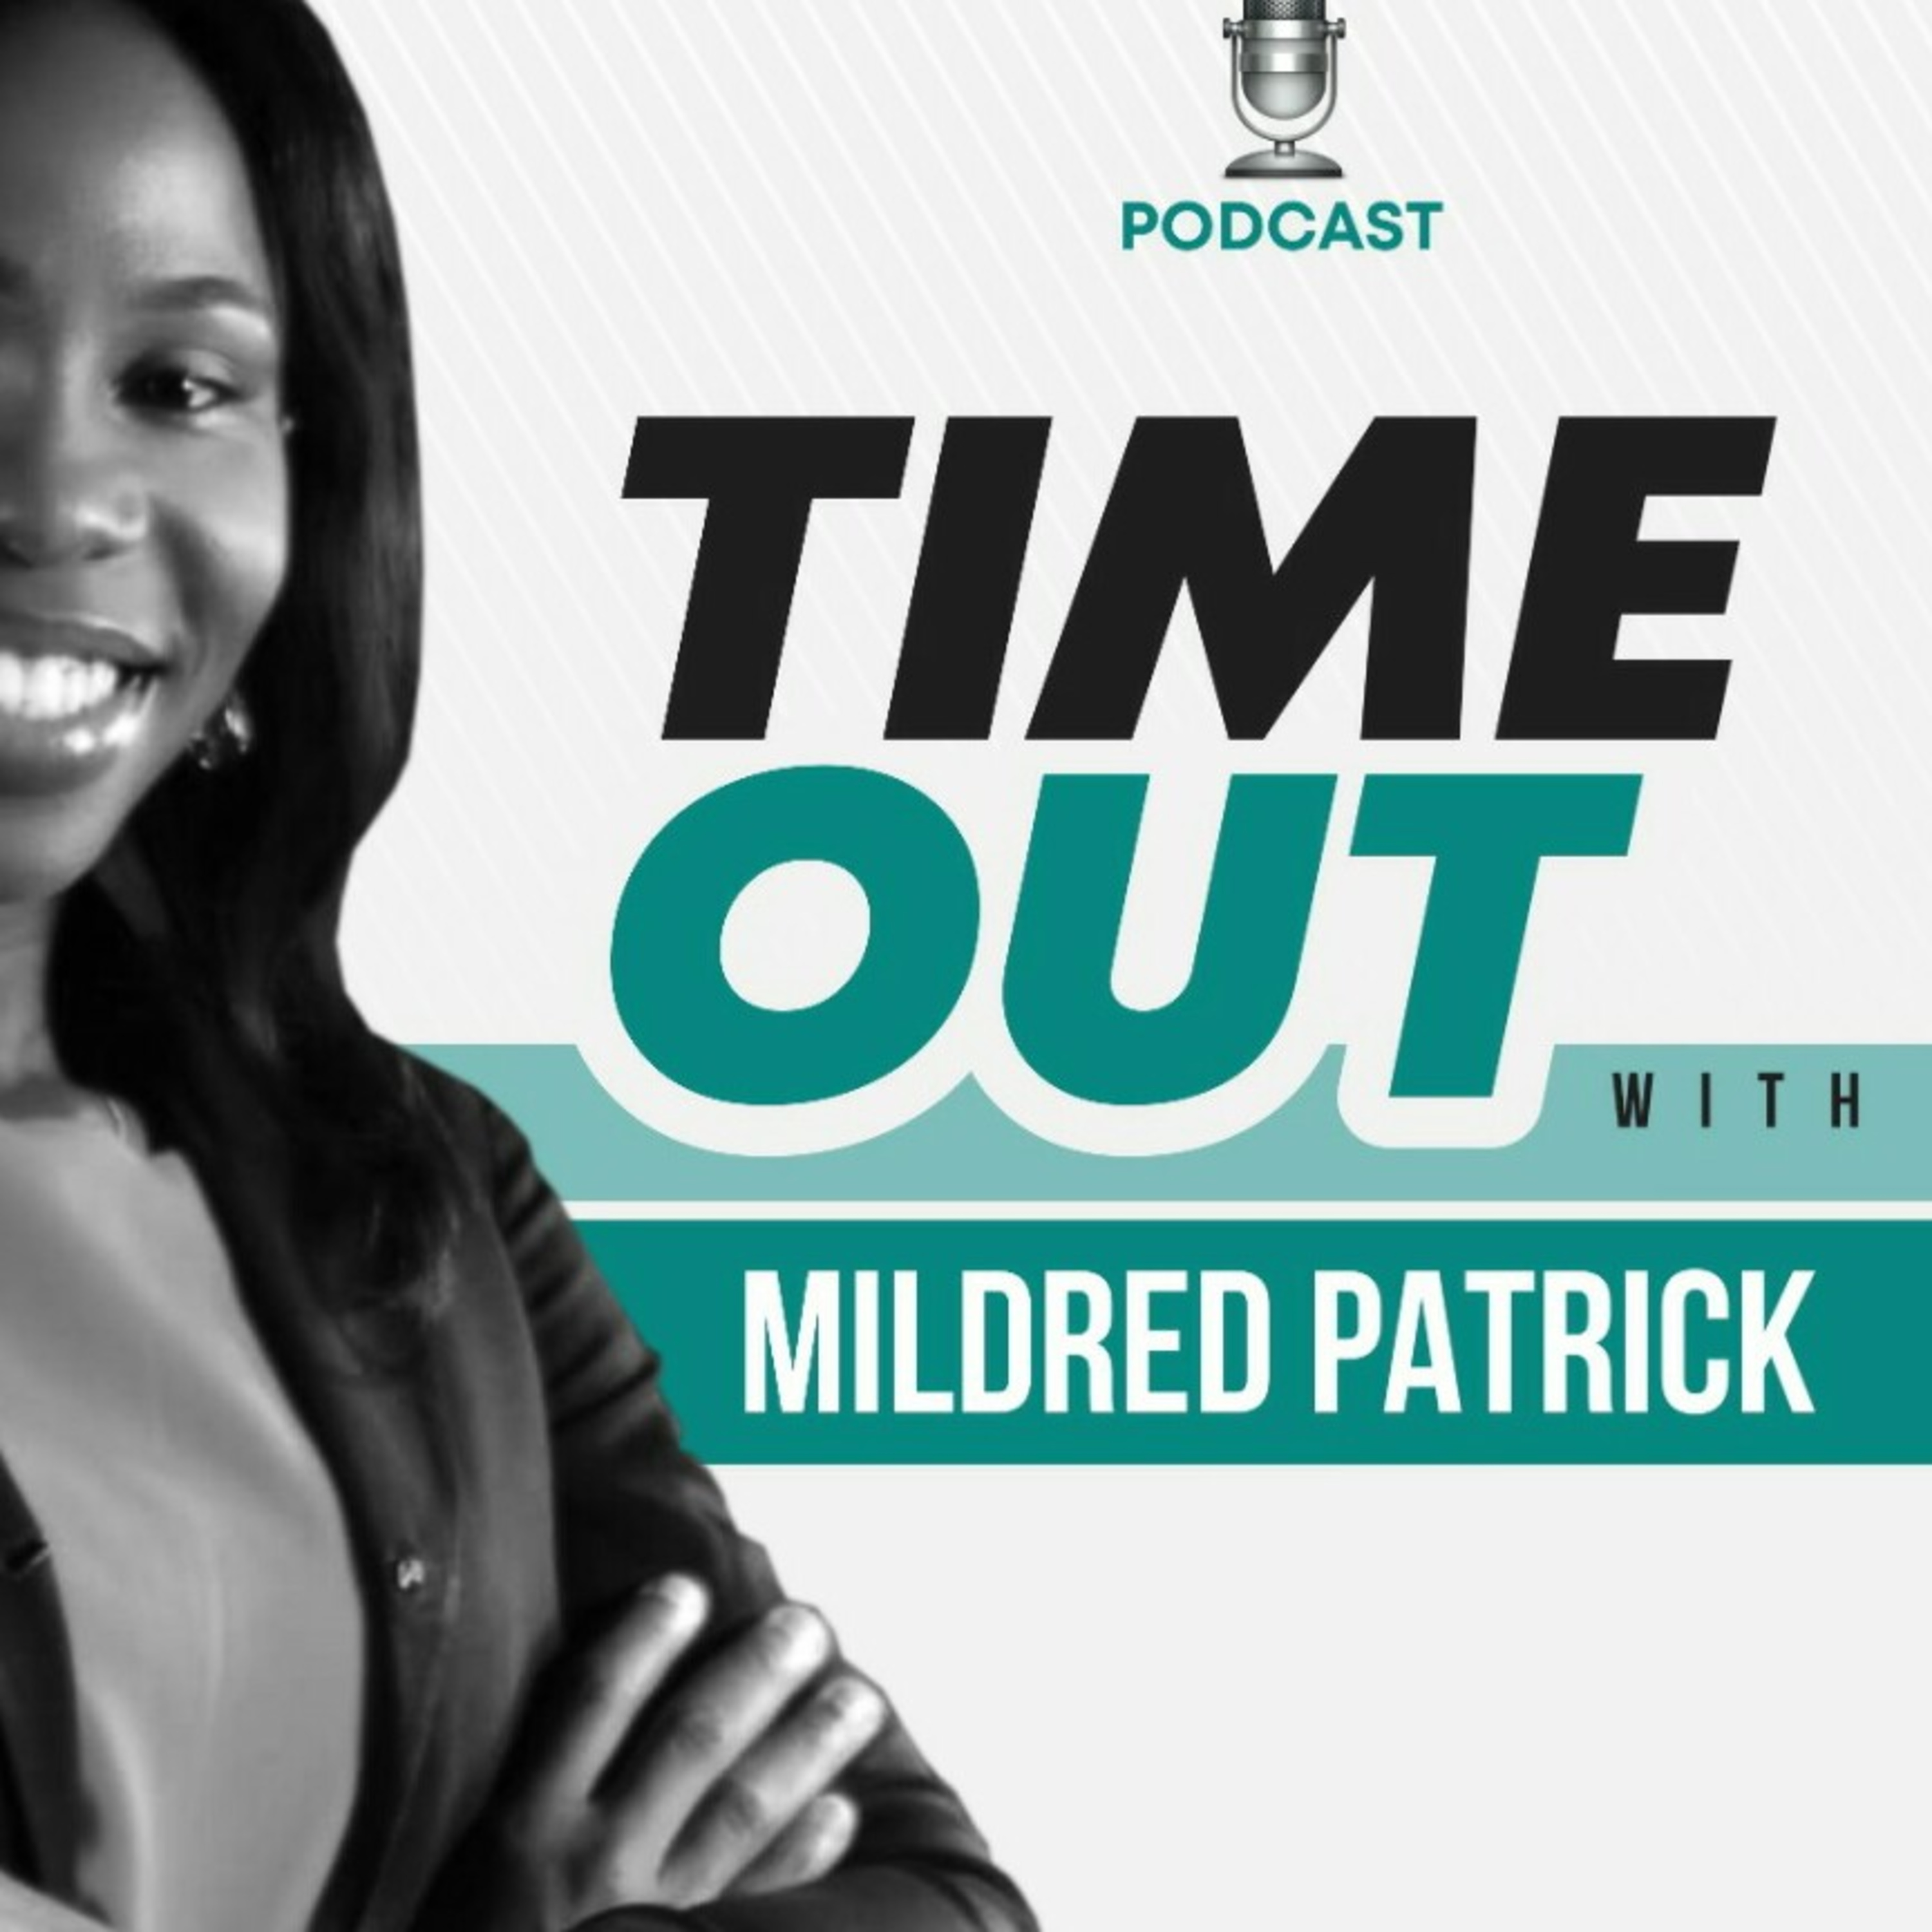 Time Out With Mildred Patrick on Jamit